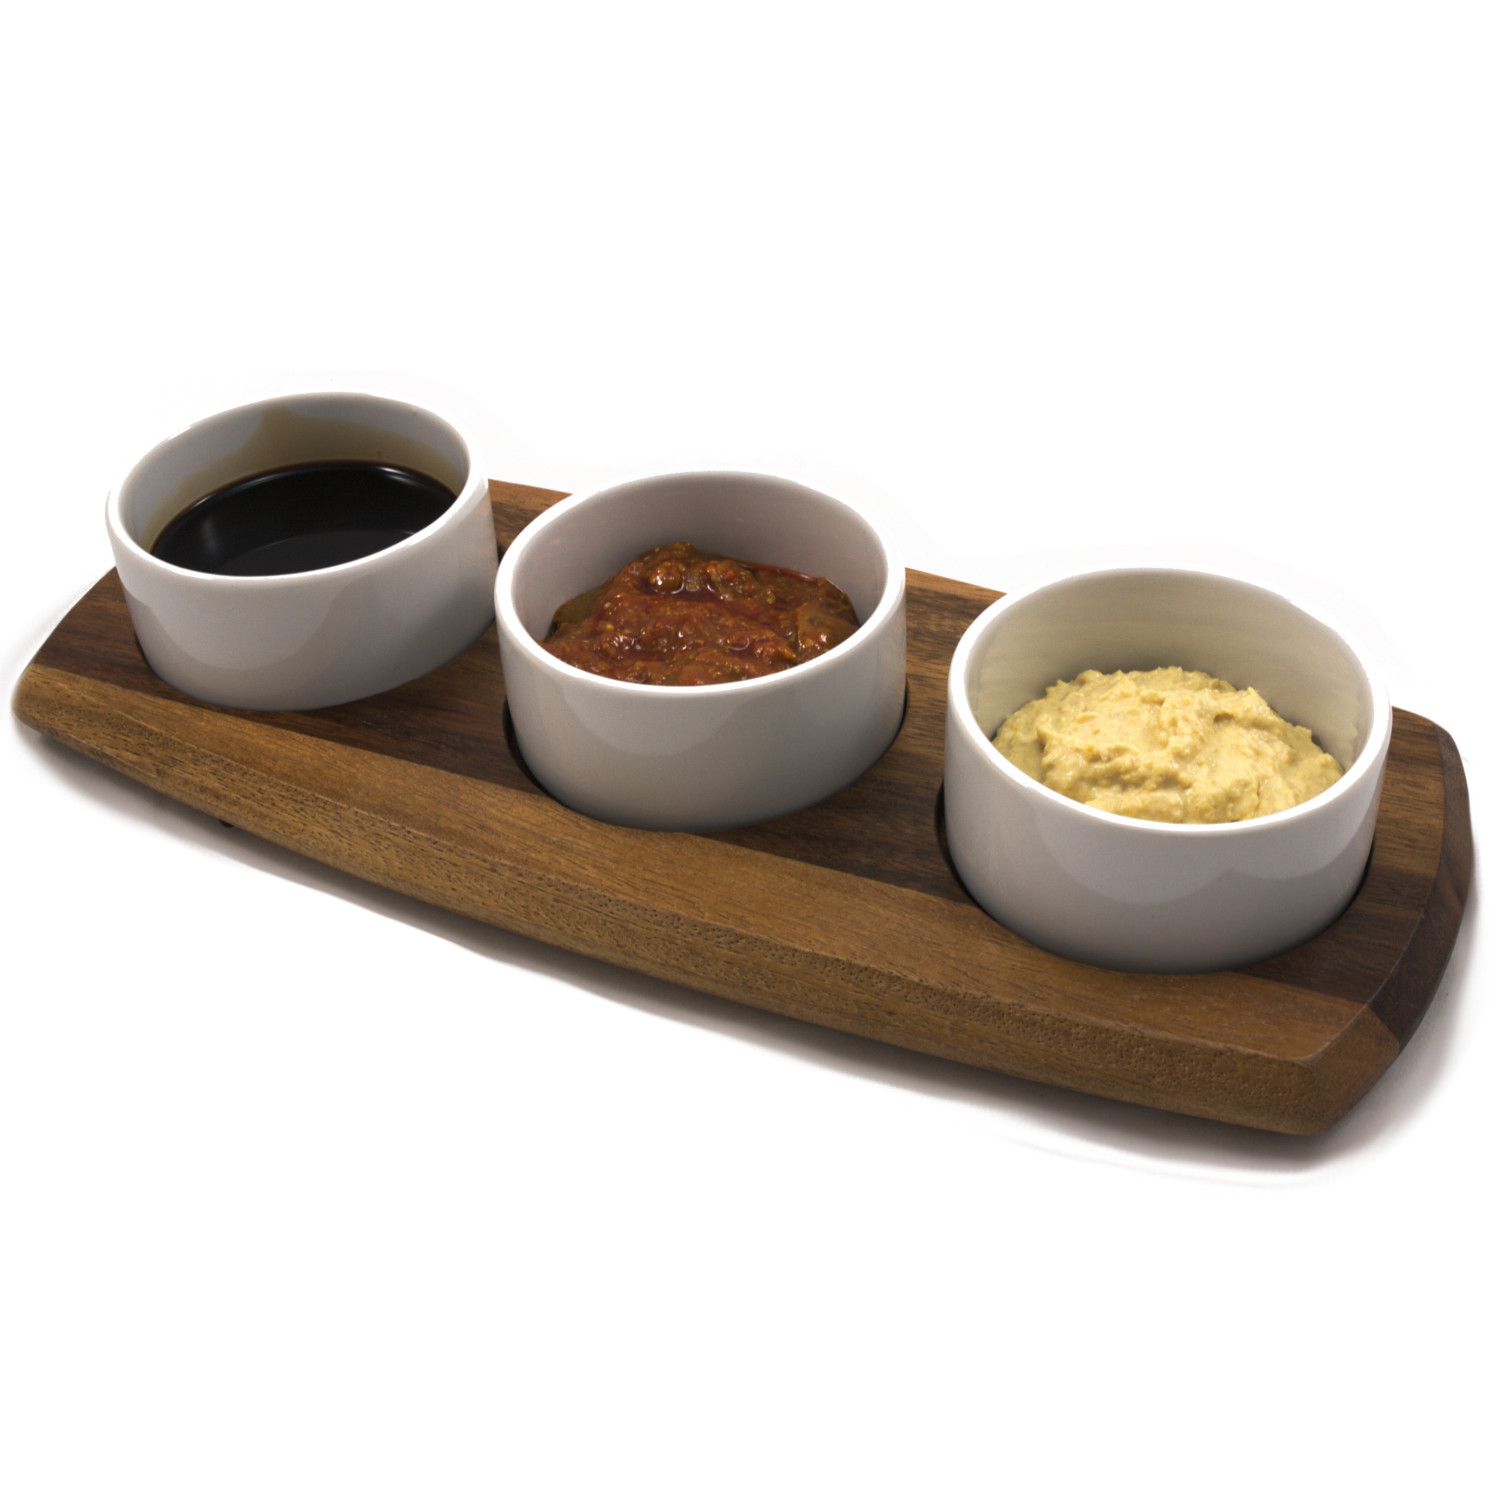 Chef-Hub Wooden 3 Bowl Dipping Set